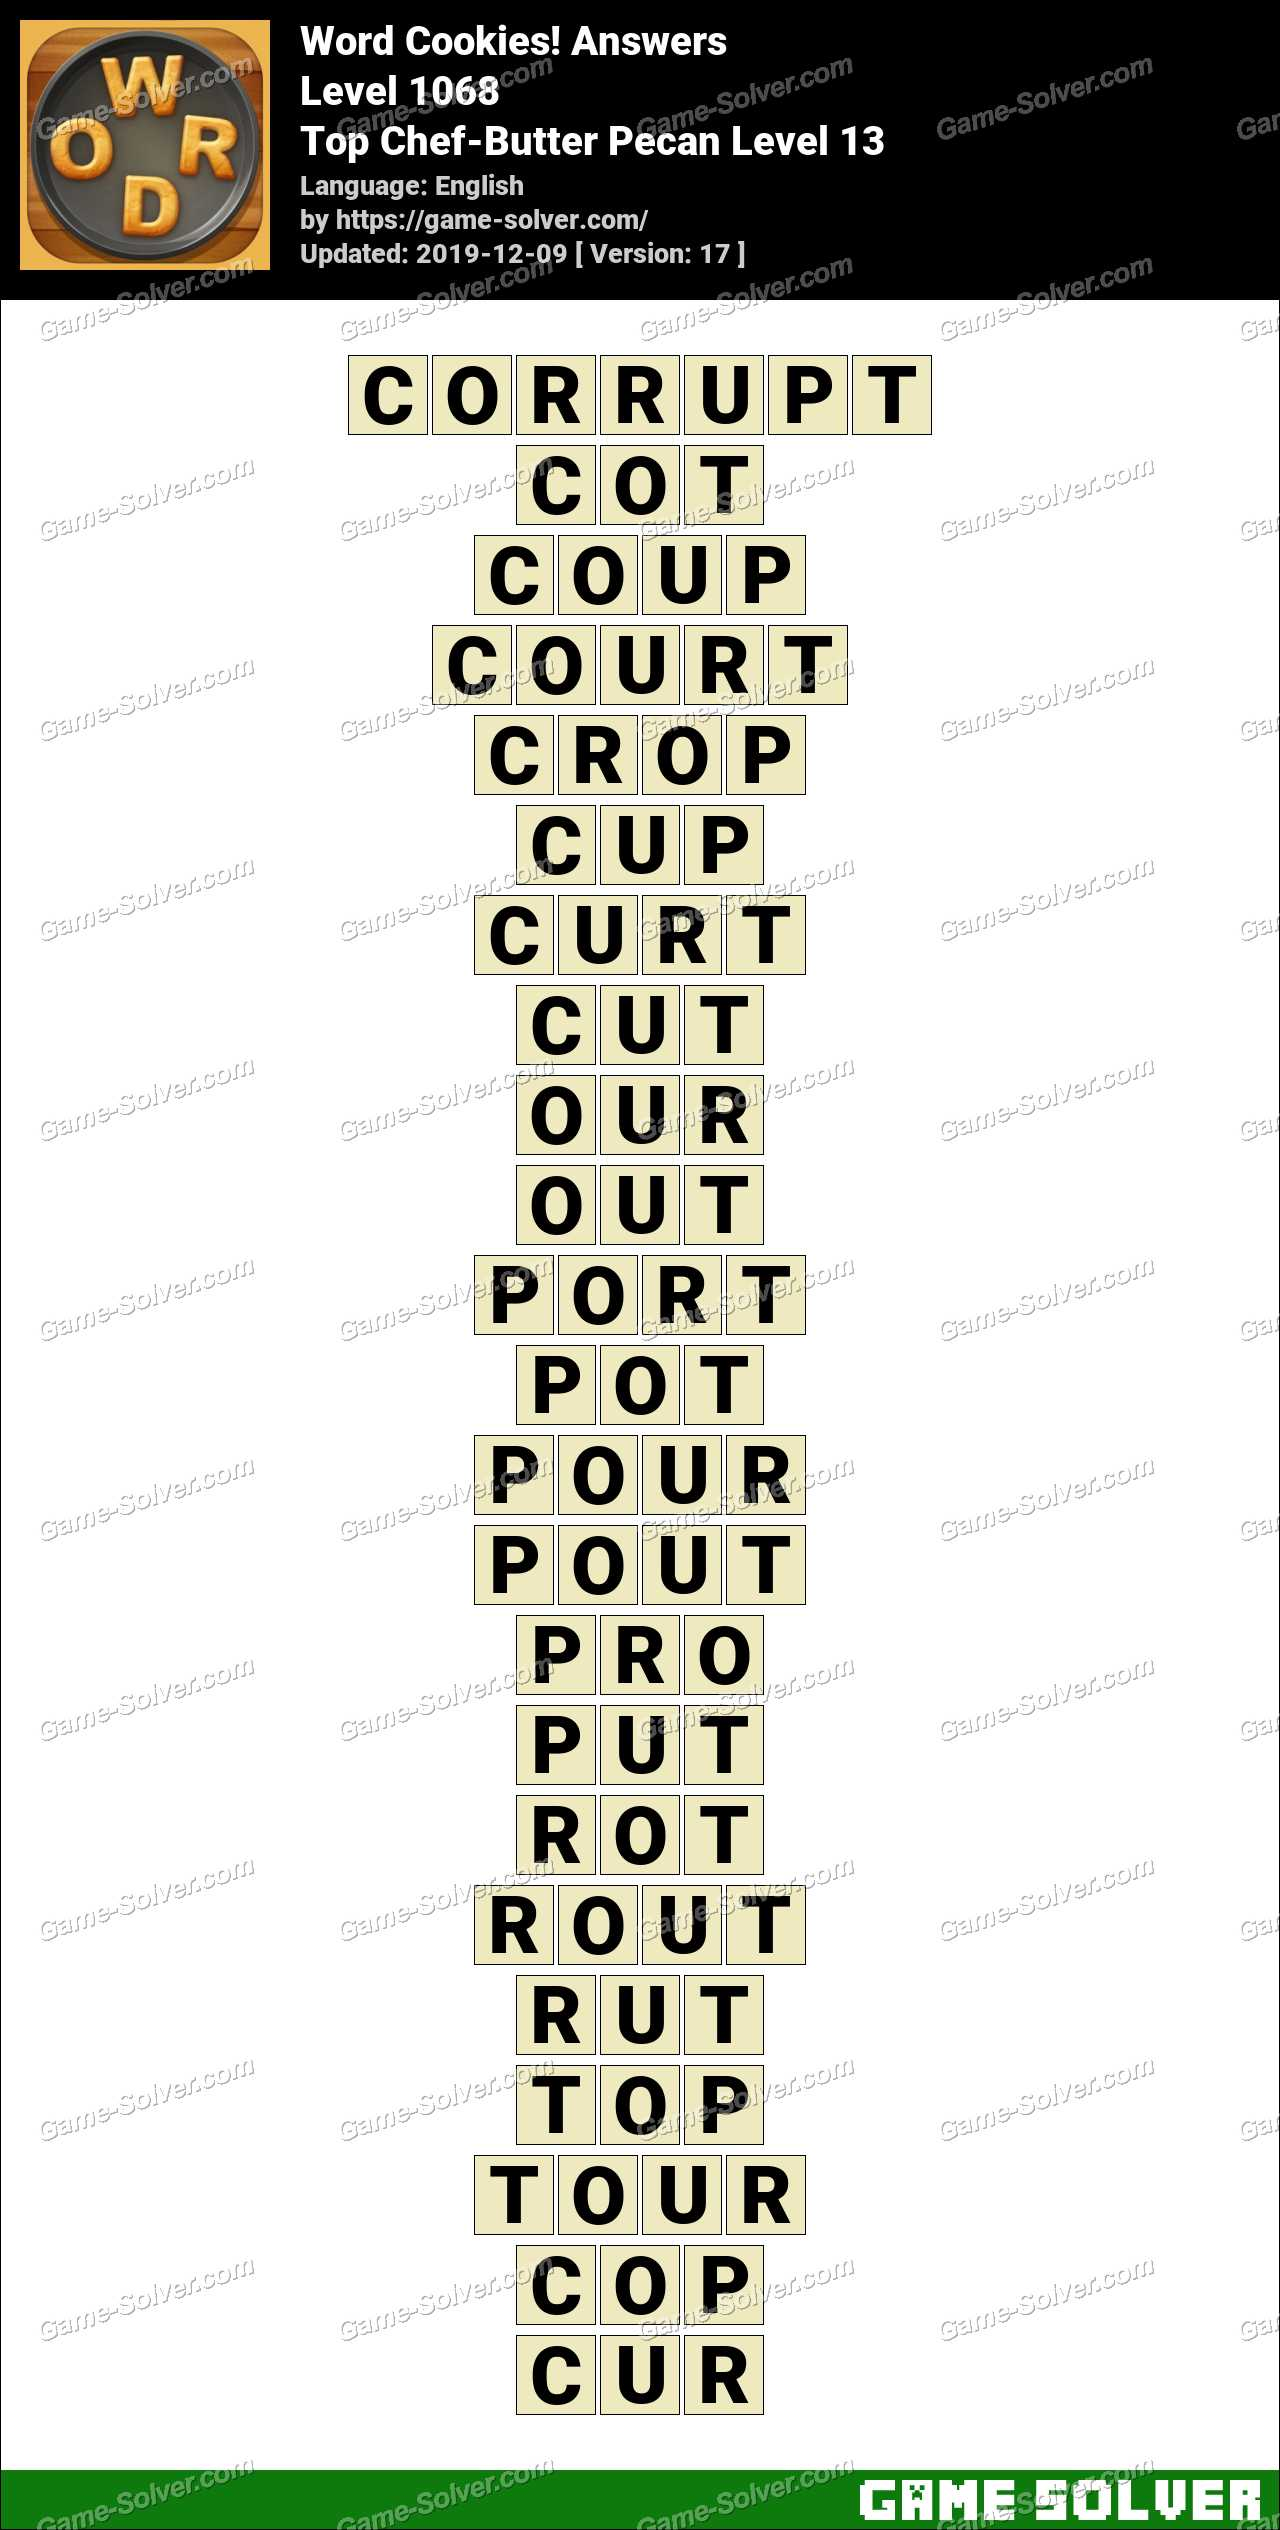 Word Cookies Top Chef-Butter Pecan Level 13 Answers